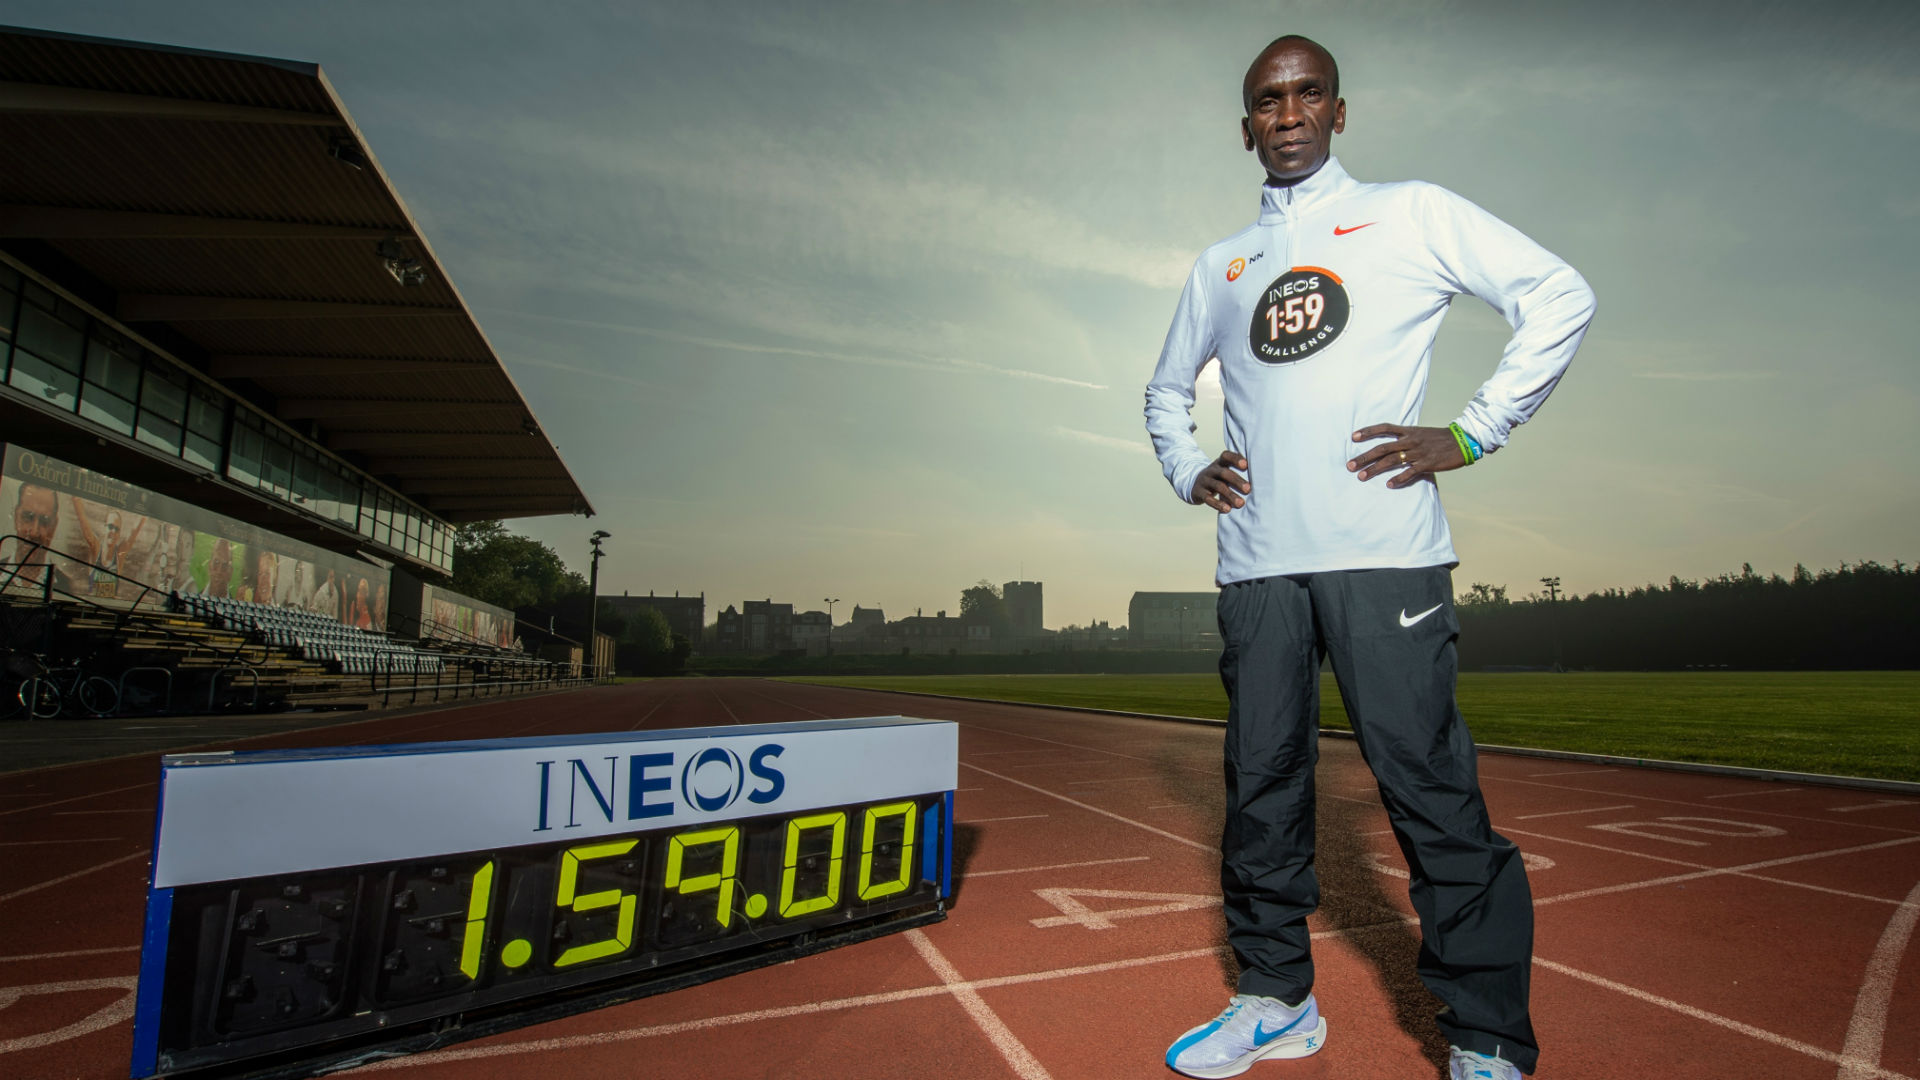 INEOS 1:59 Challenge: Eliud Kipchoge enters second phase of training ahead of historic marathon attempt